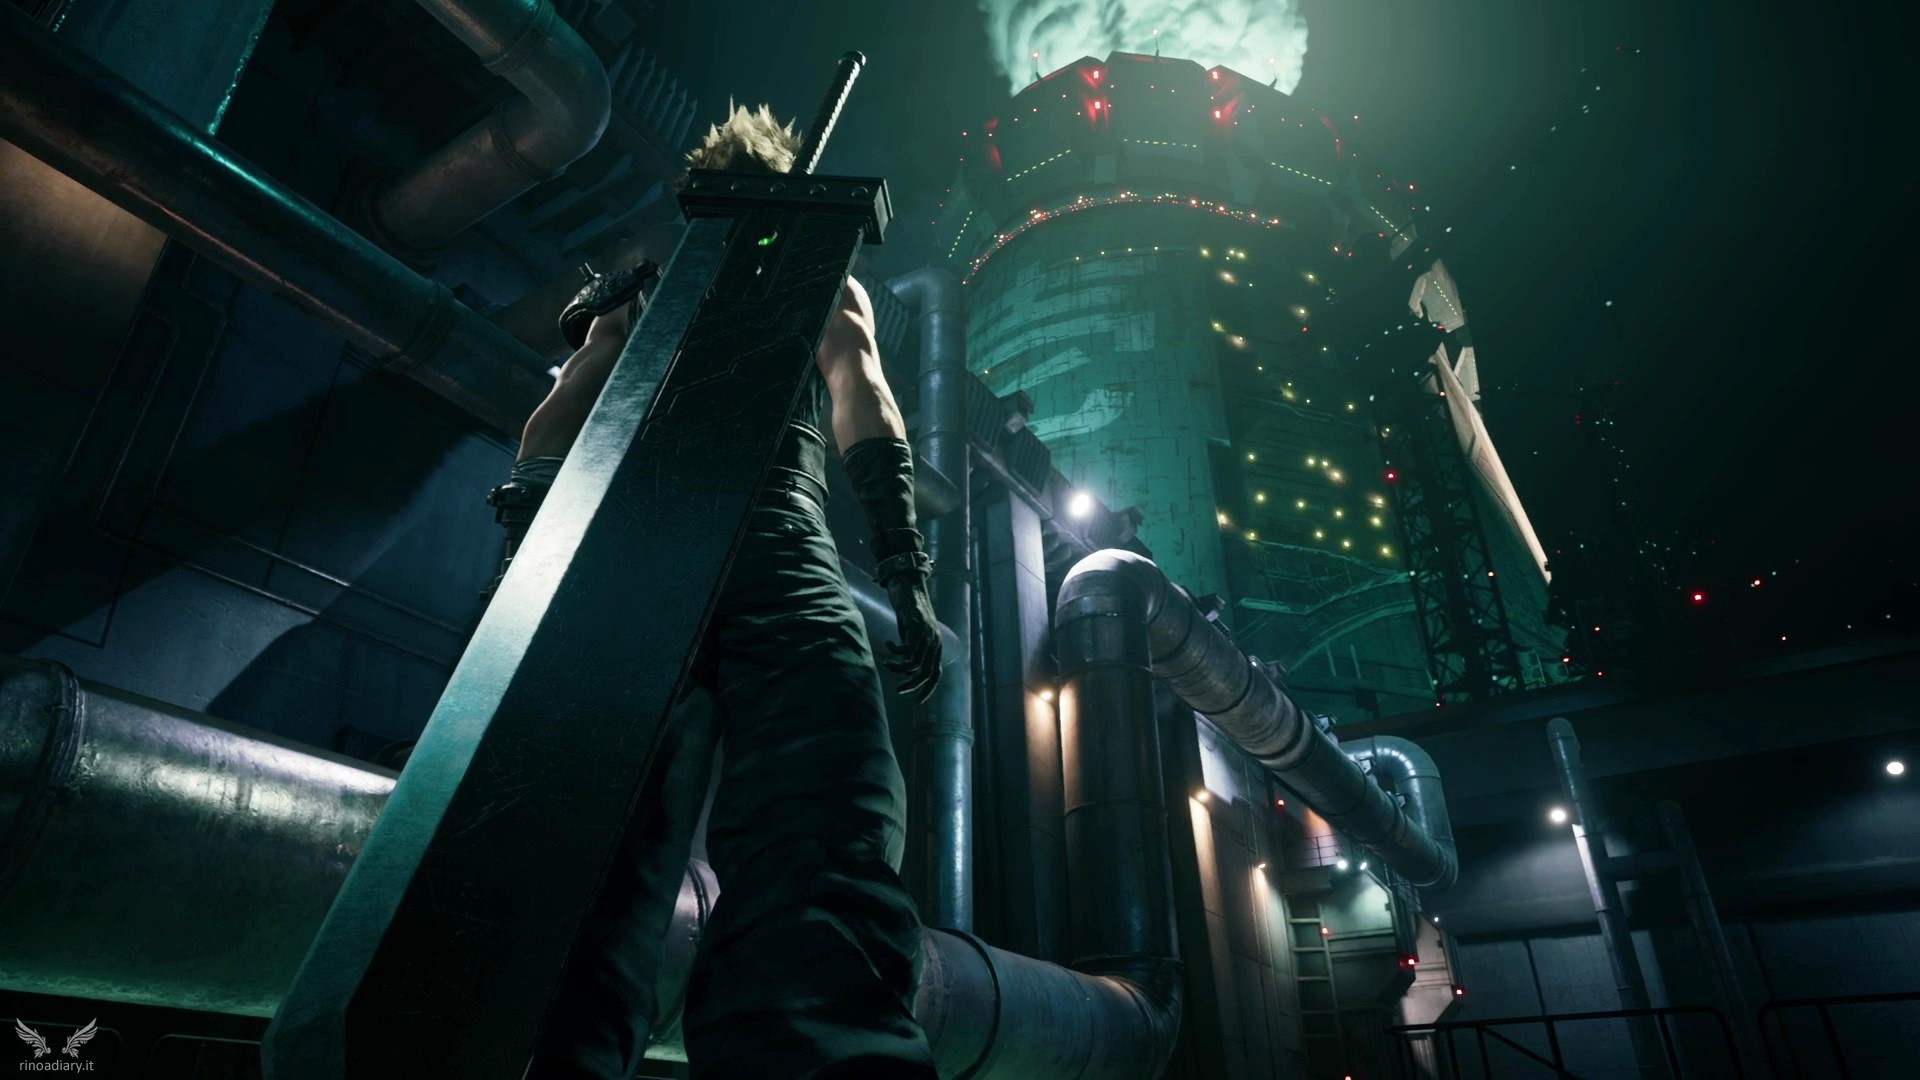 Final Fantasy VII Remake ANTEPRIMA Milan Preview Event 2020 – la nostra esperienza!